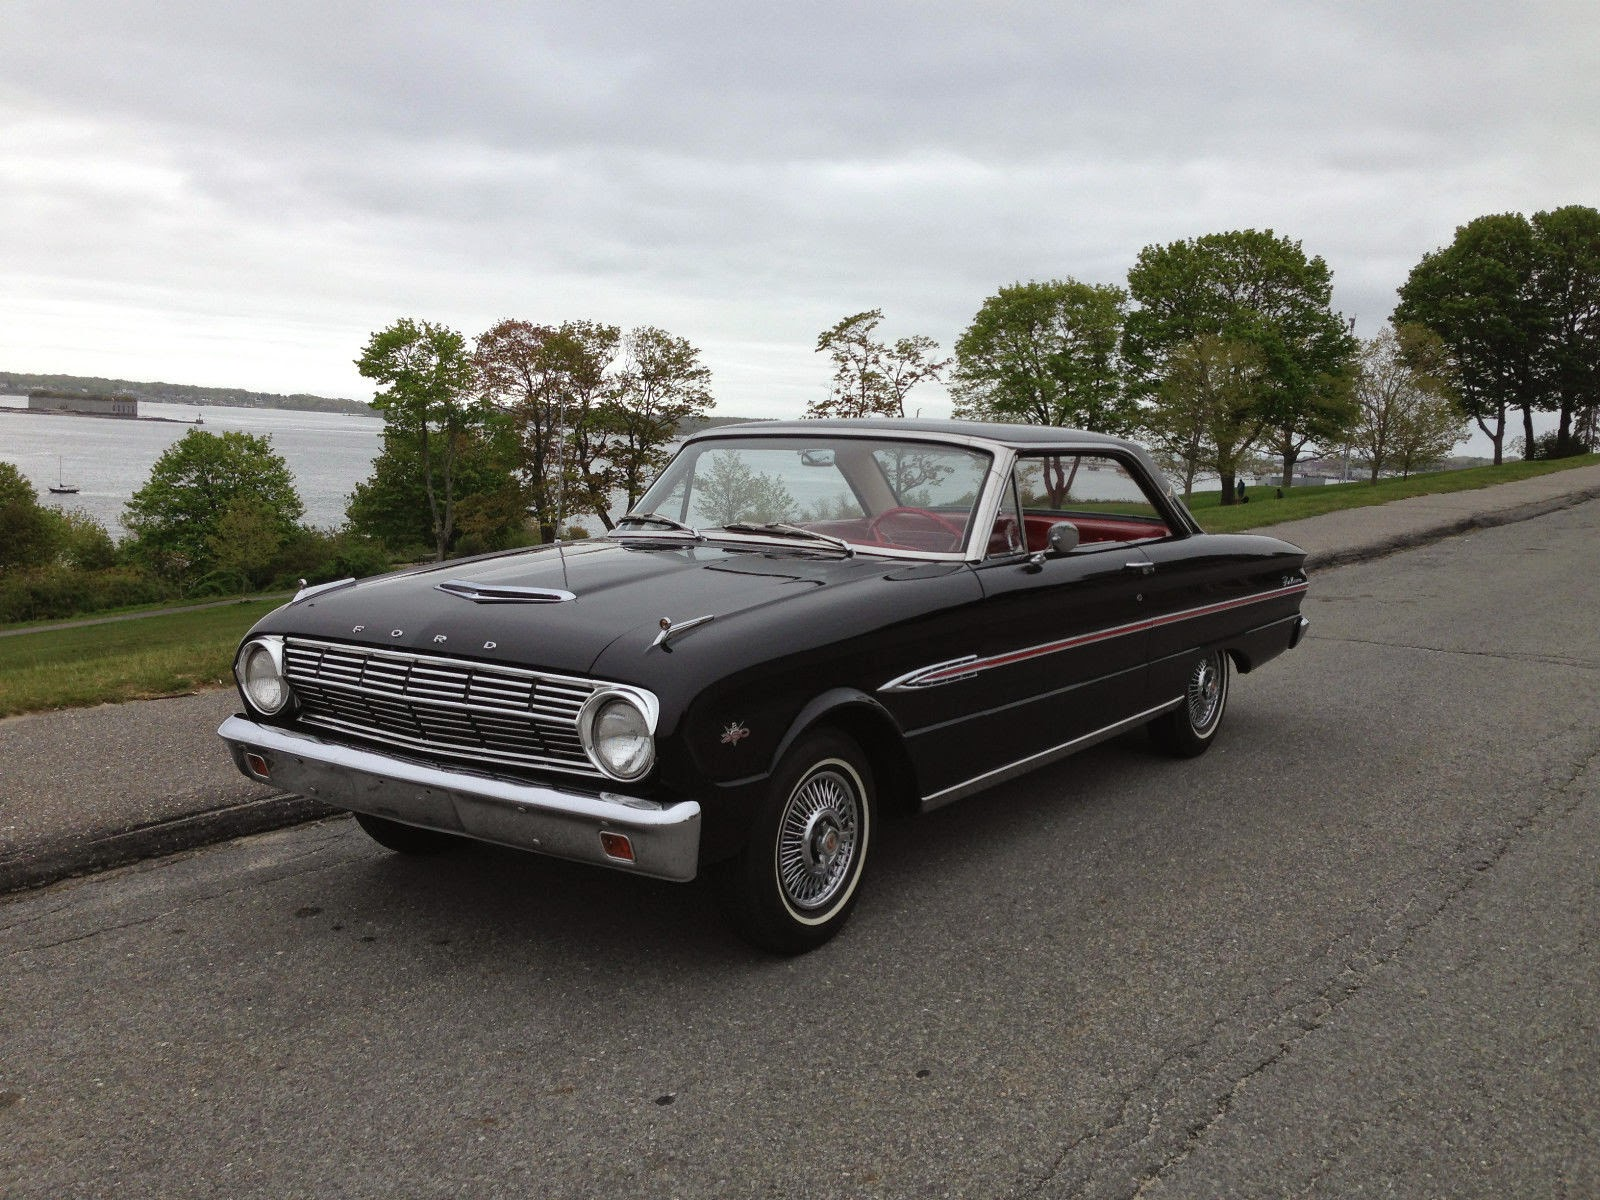 59vvf Ford E 150 Econoline Windshield Wiper Delay Not Working When further 1963 Ford Falcon Futura 2 Door Hardtop also Watch besides Watch likewise Air Suspension Wiring Diagram. on lincoln town car relay location